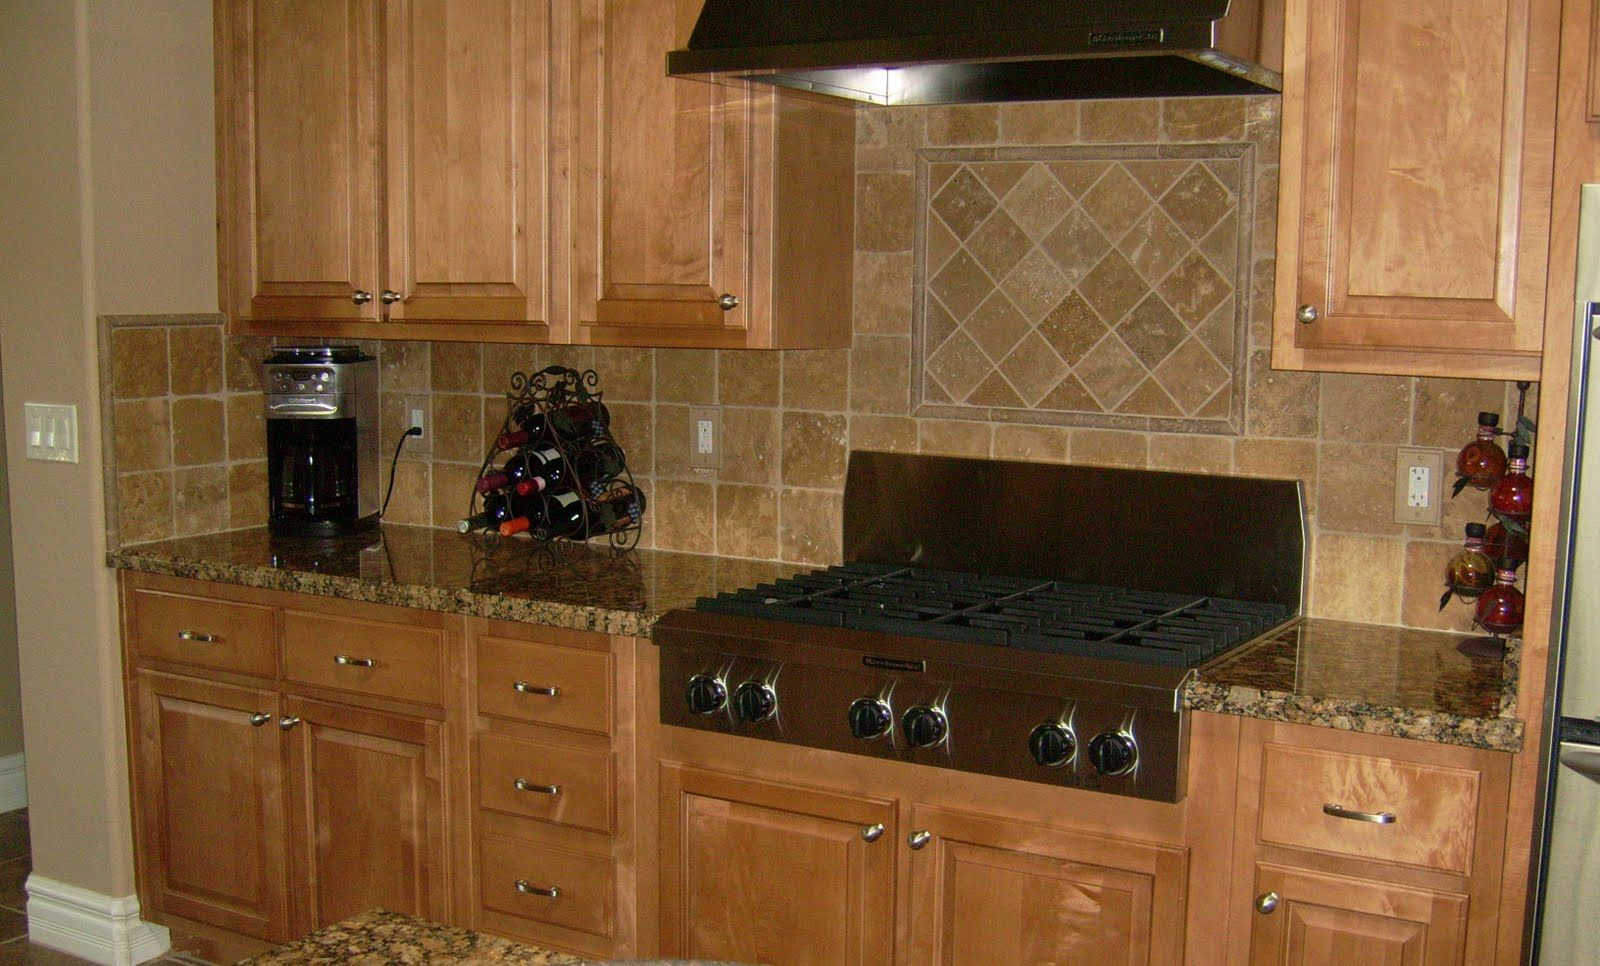 kitchen backsplash ideas | SPICY Kitchen Backsplash Ideas | Home ...